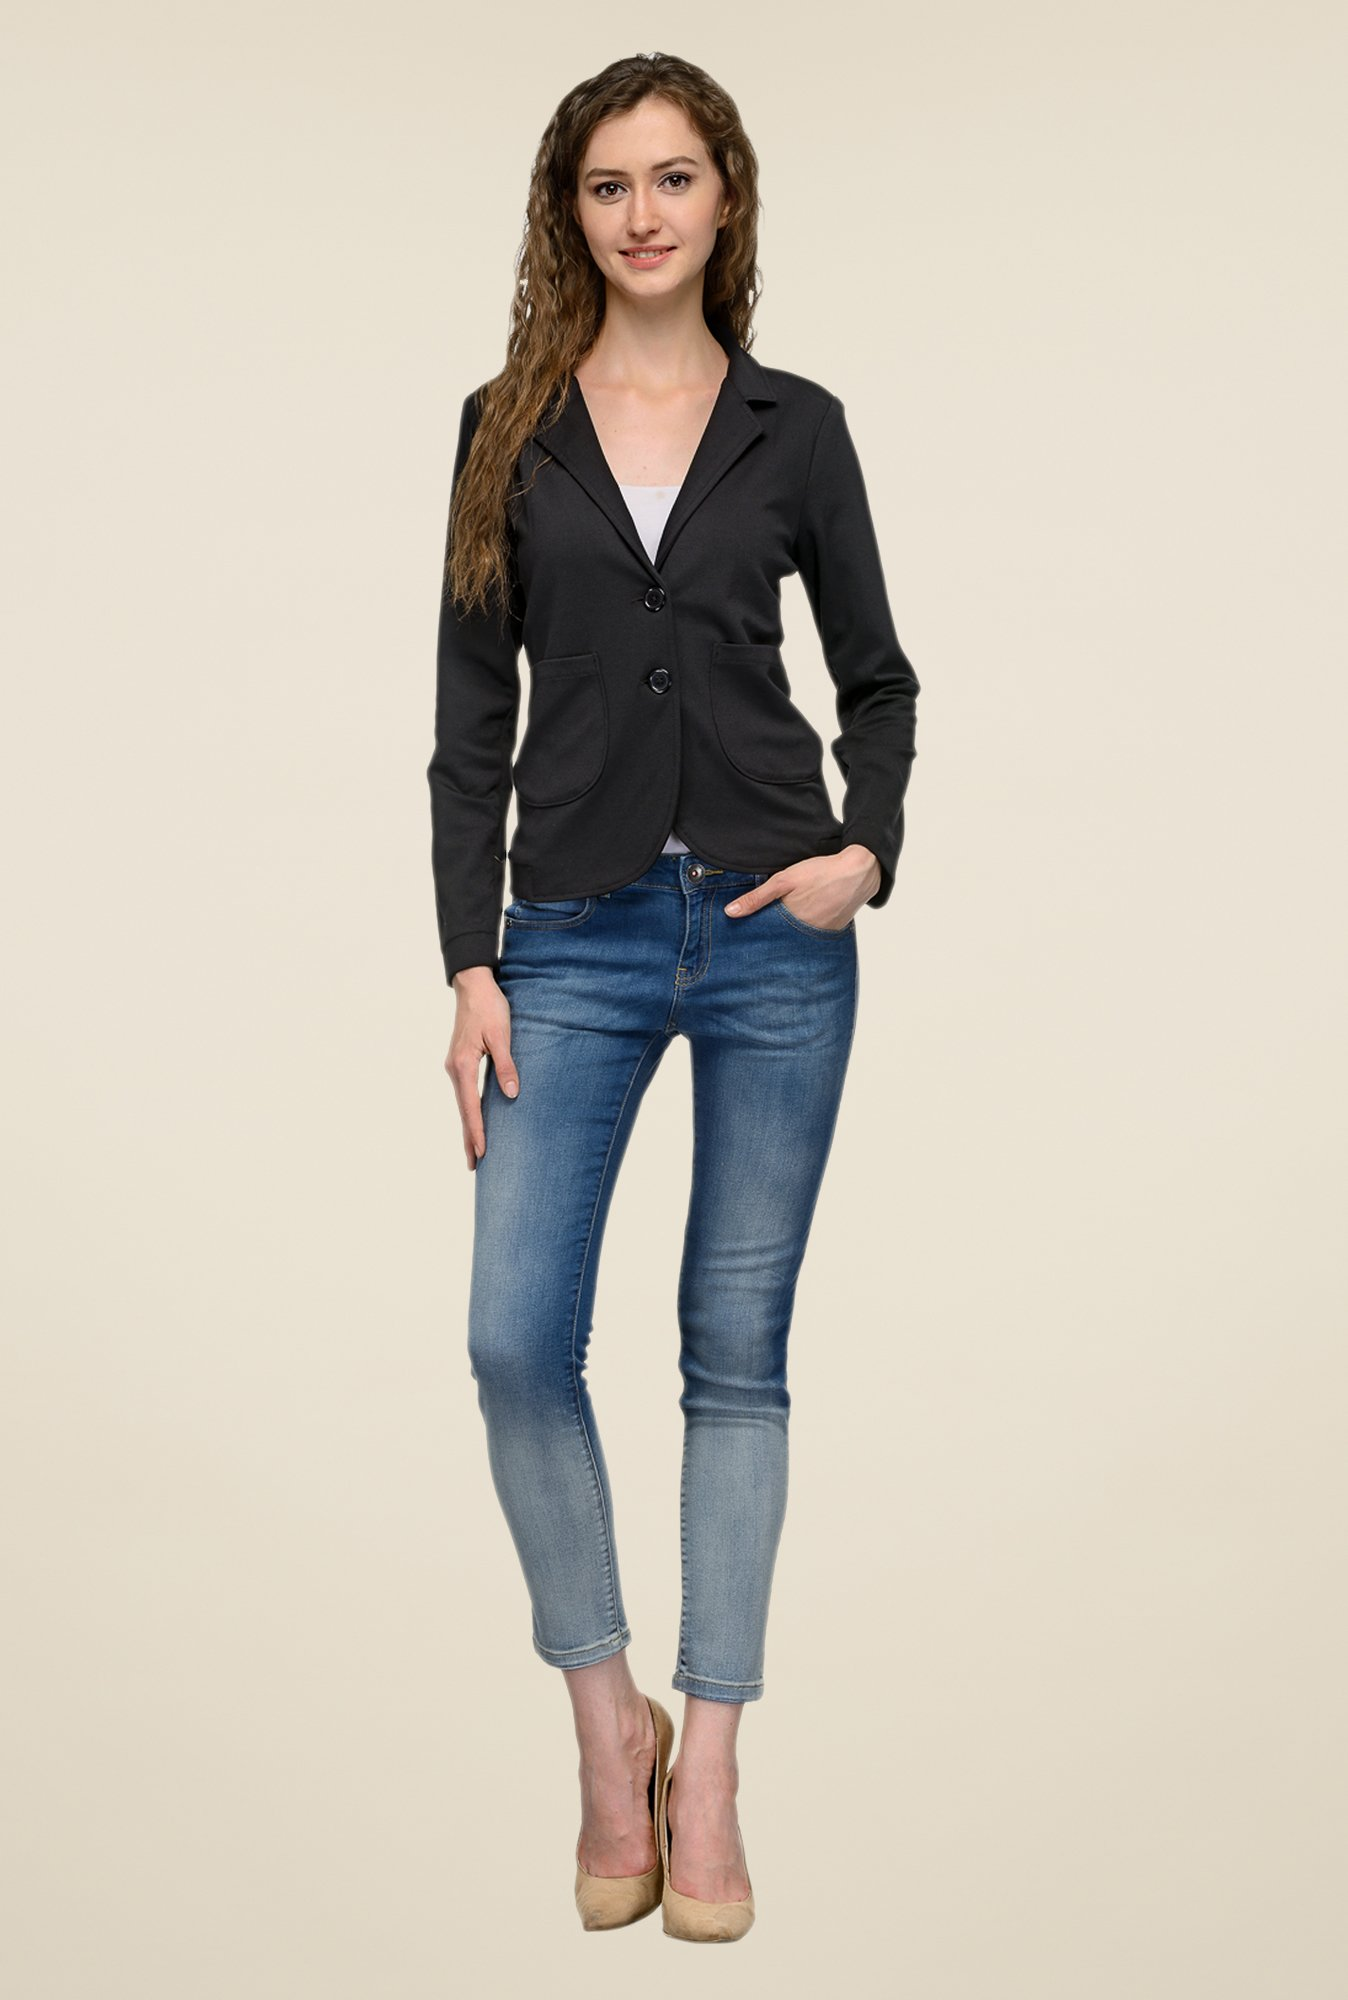 United Colors of Benetton Black Solid Blazer